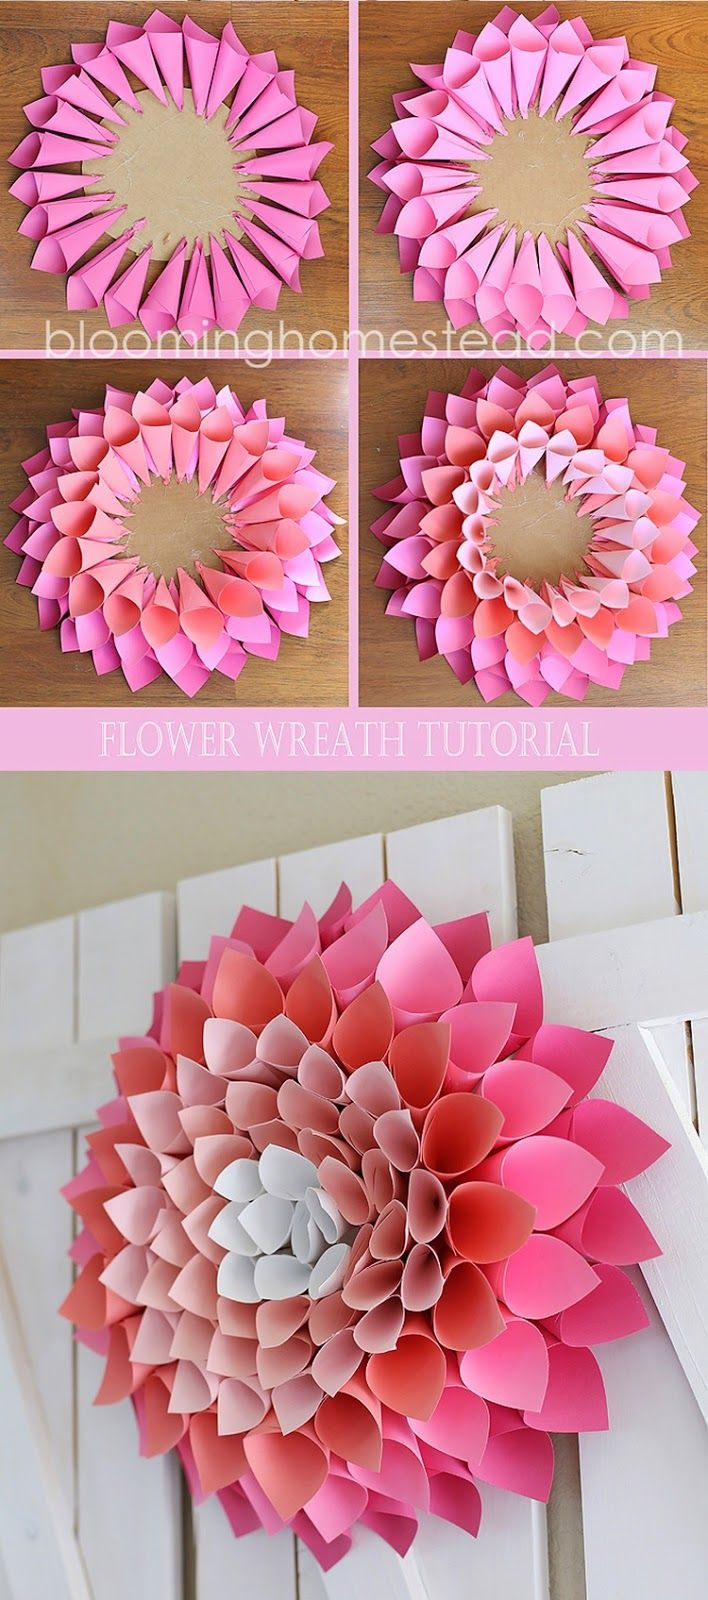 Make Beautiful Flower With Papers D Craft Pinterest Beautiful